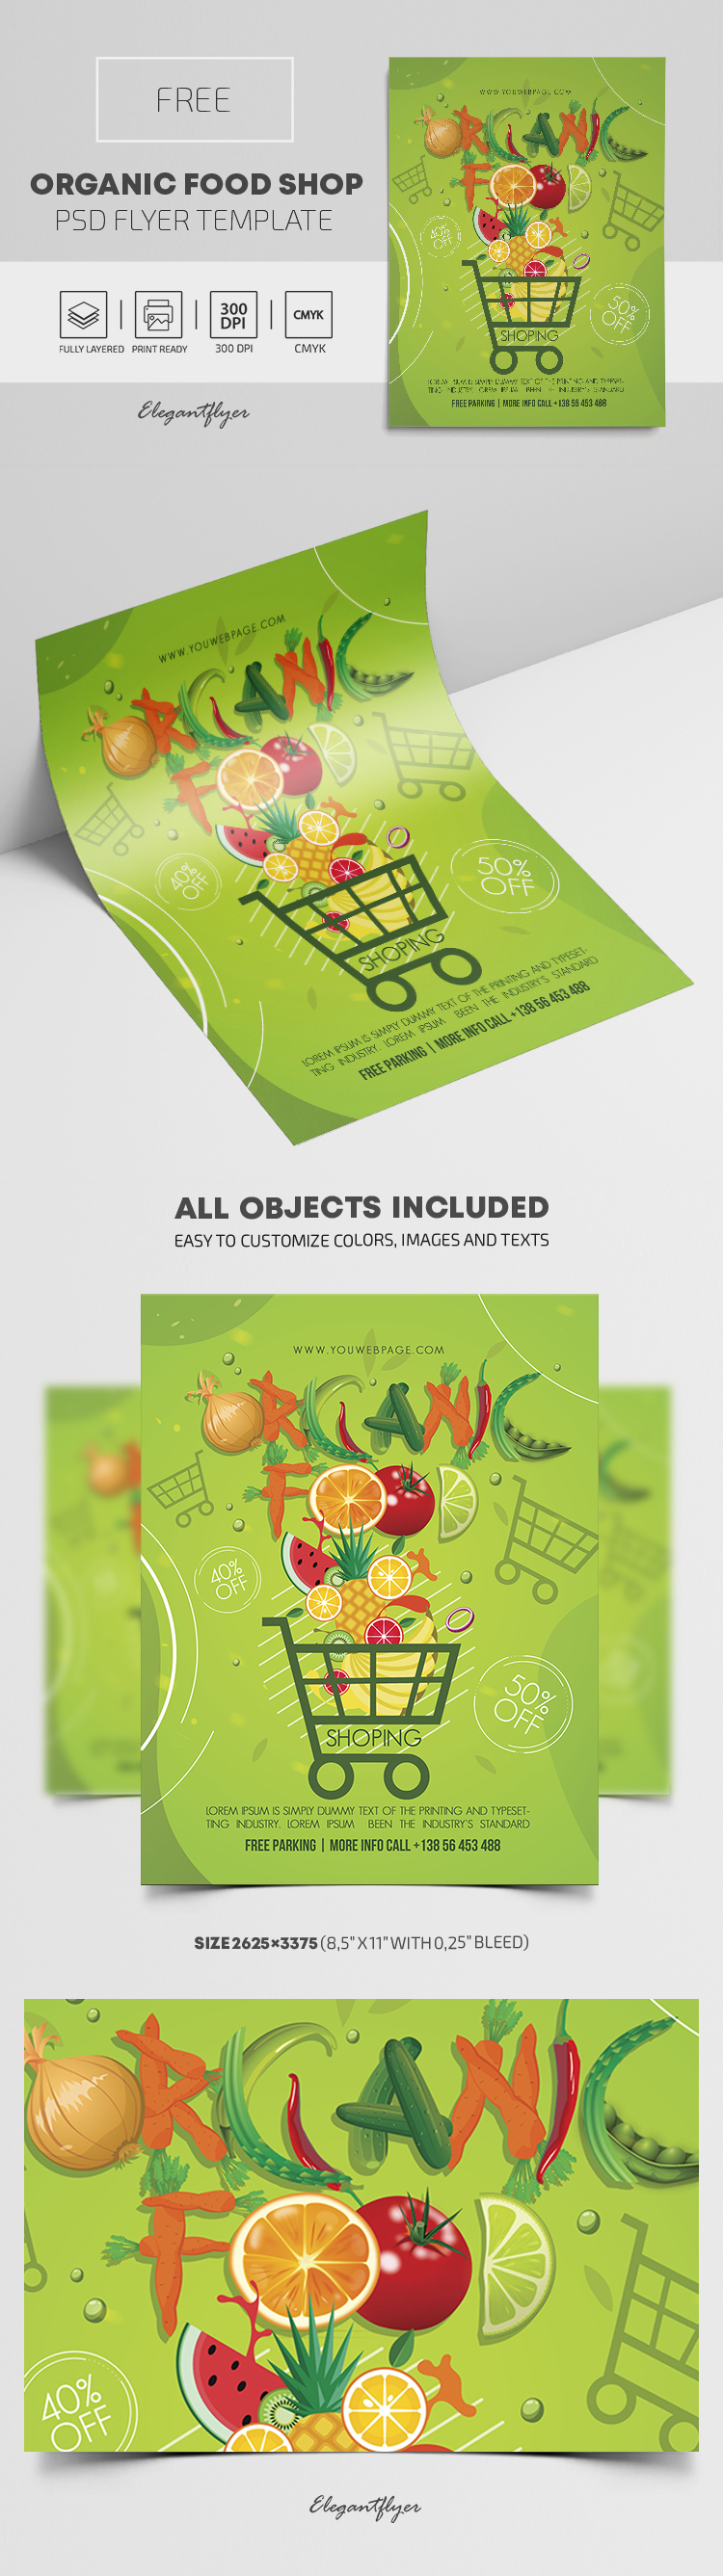 Organic Food Shop – Free PSD Flyer Template